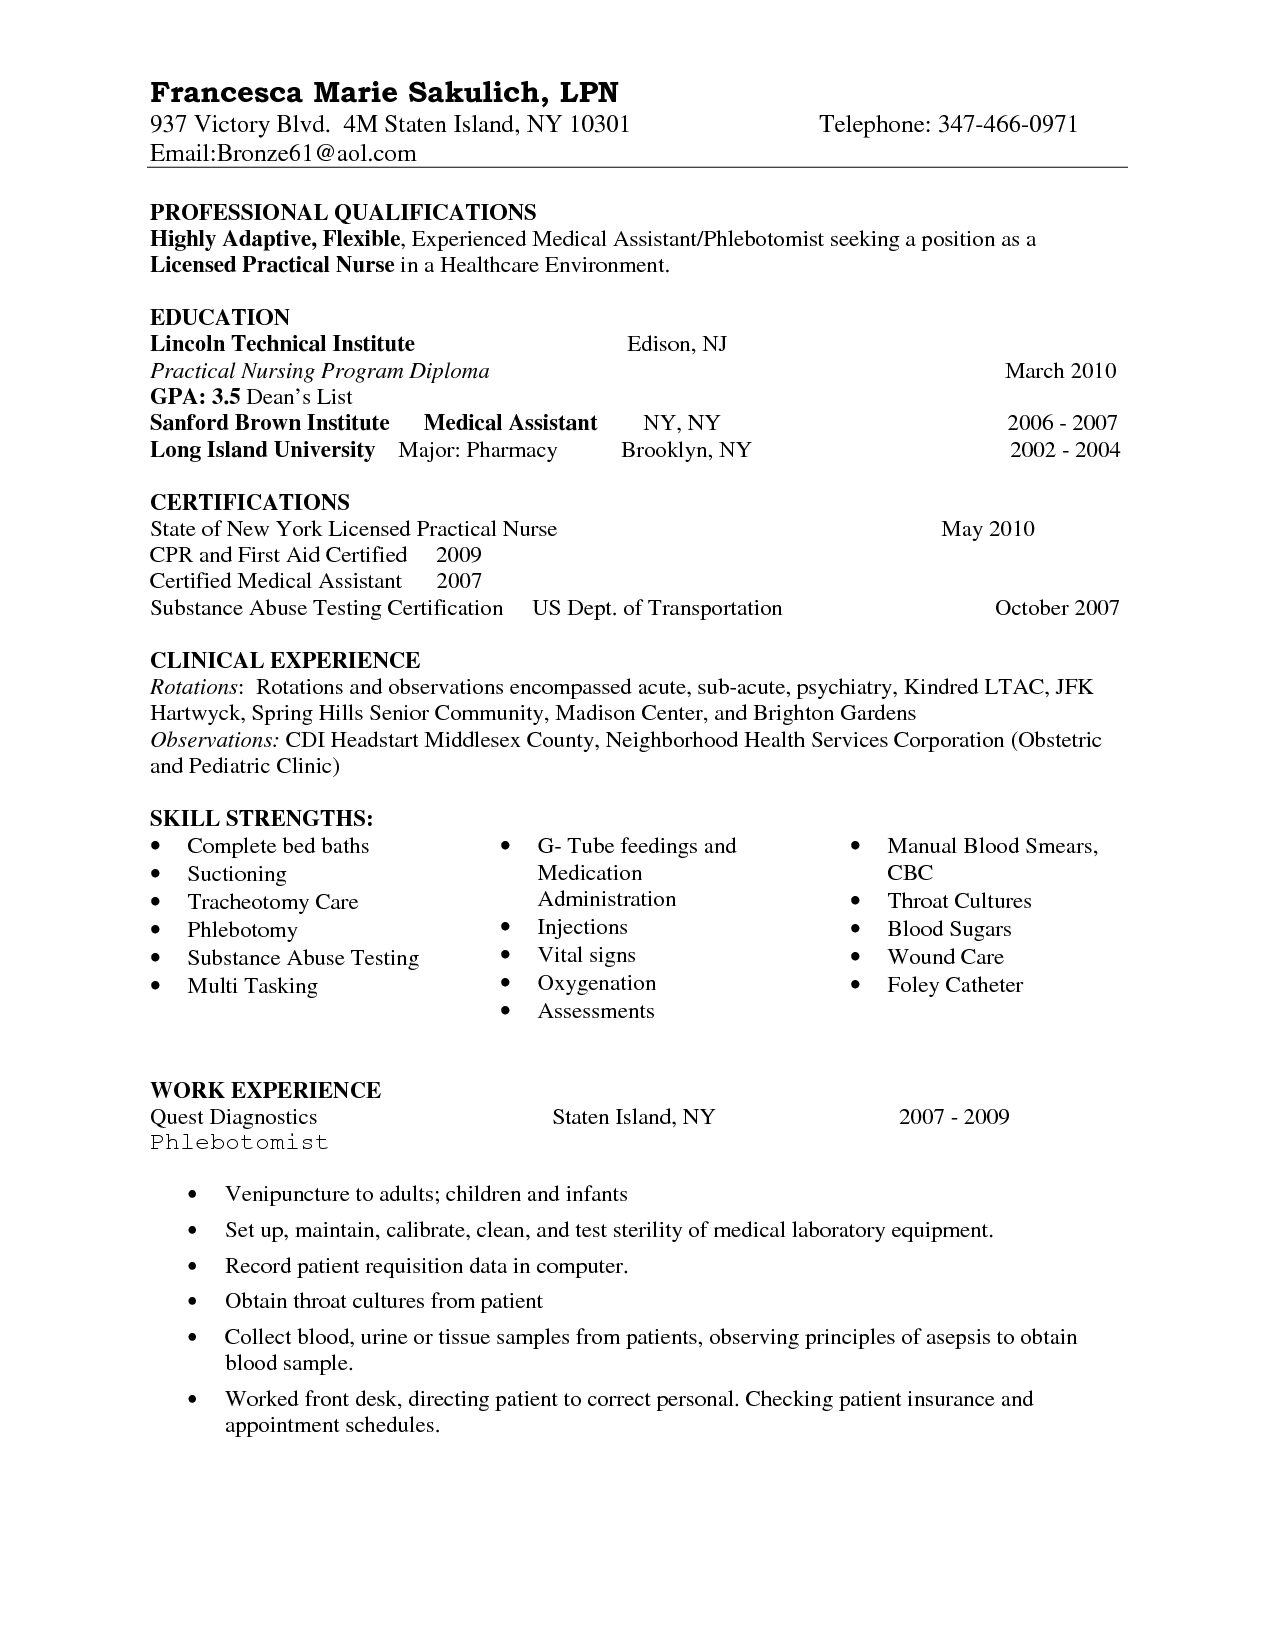 Nurse Resume Skills Entry Level Lpn Resume Sample Nursing Pinterest